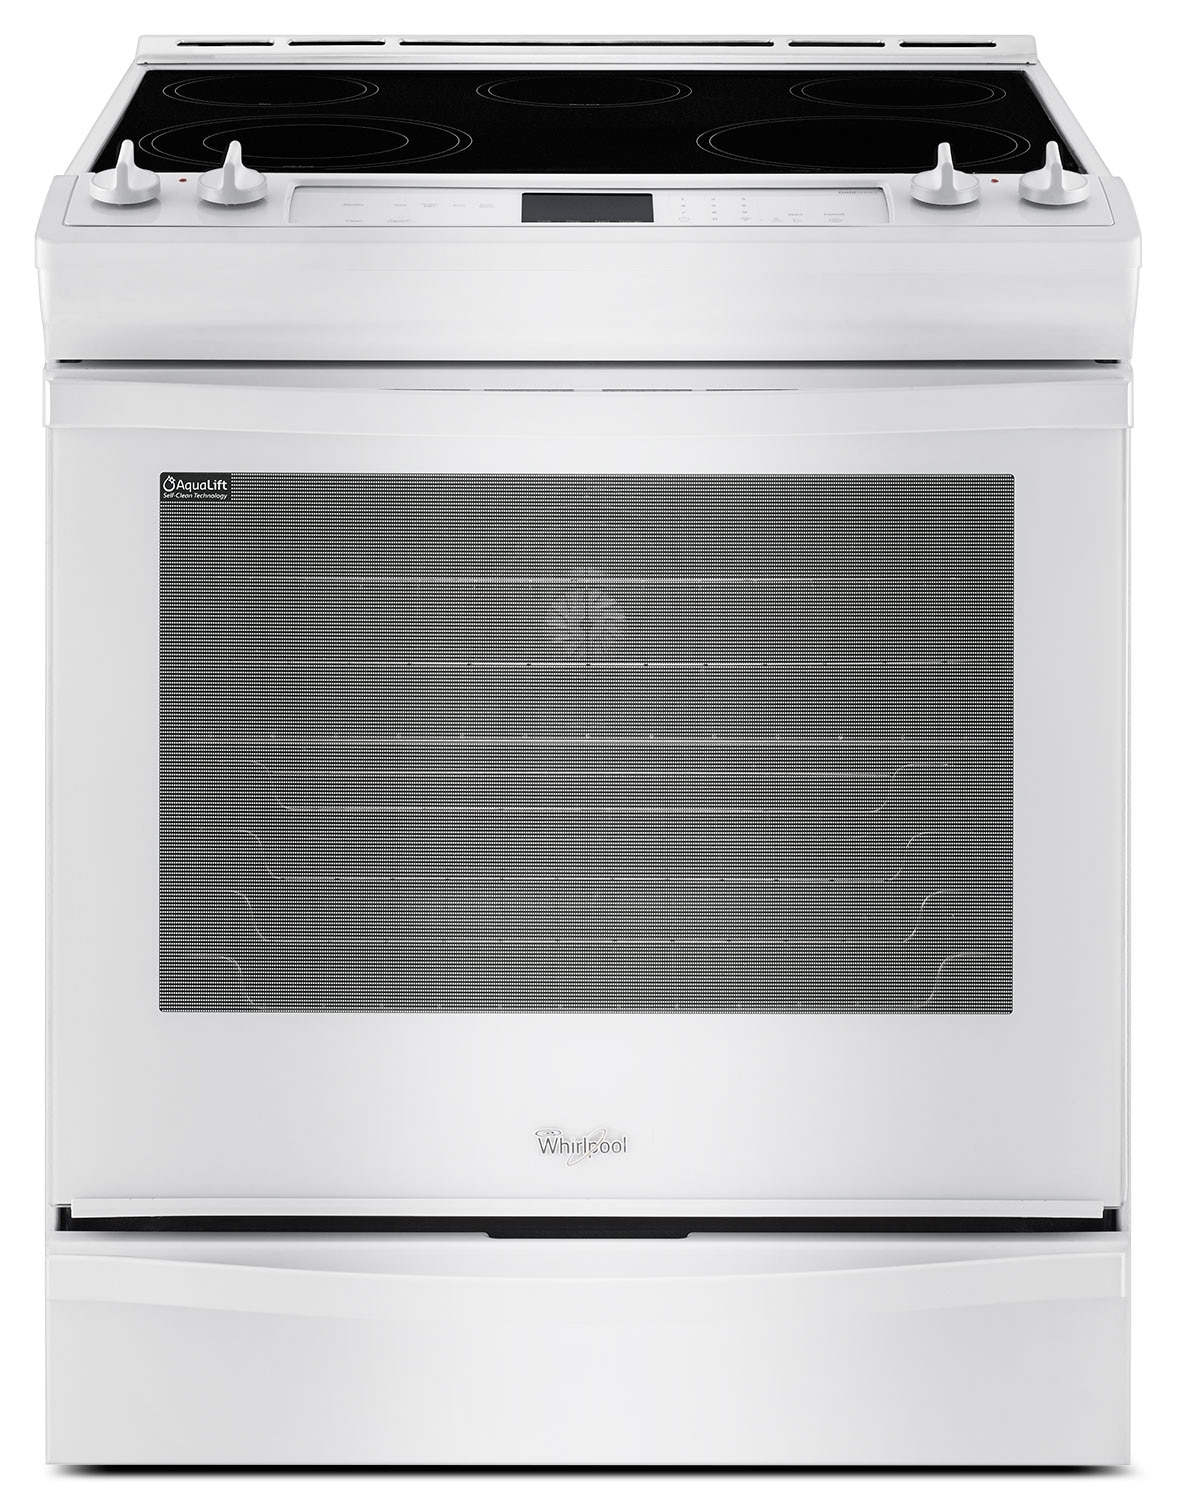 Cooking Products - Whirlpool White Freestanding Electric Convection Range (6.2 Cu. Ft.) - YWEE730H0DW